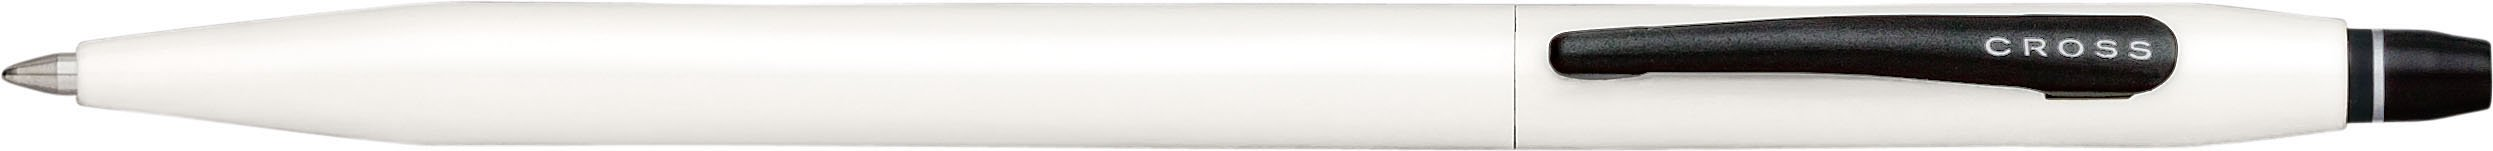 Cross Click Gel Ink Pen, Pearlescent White (AT0625-3)